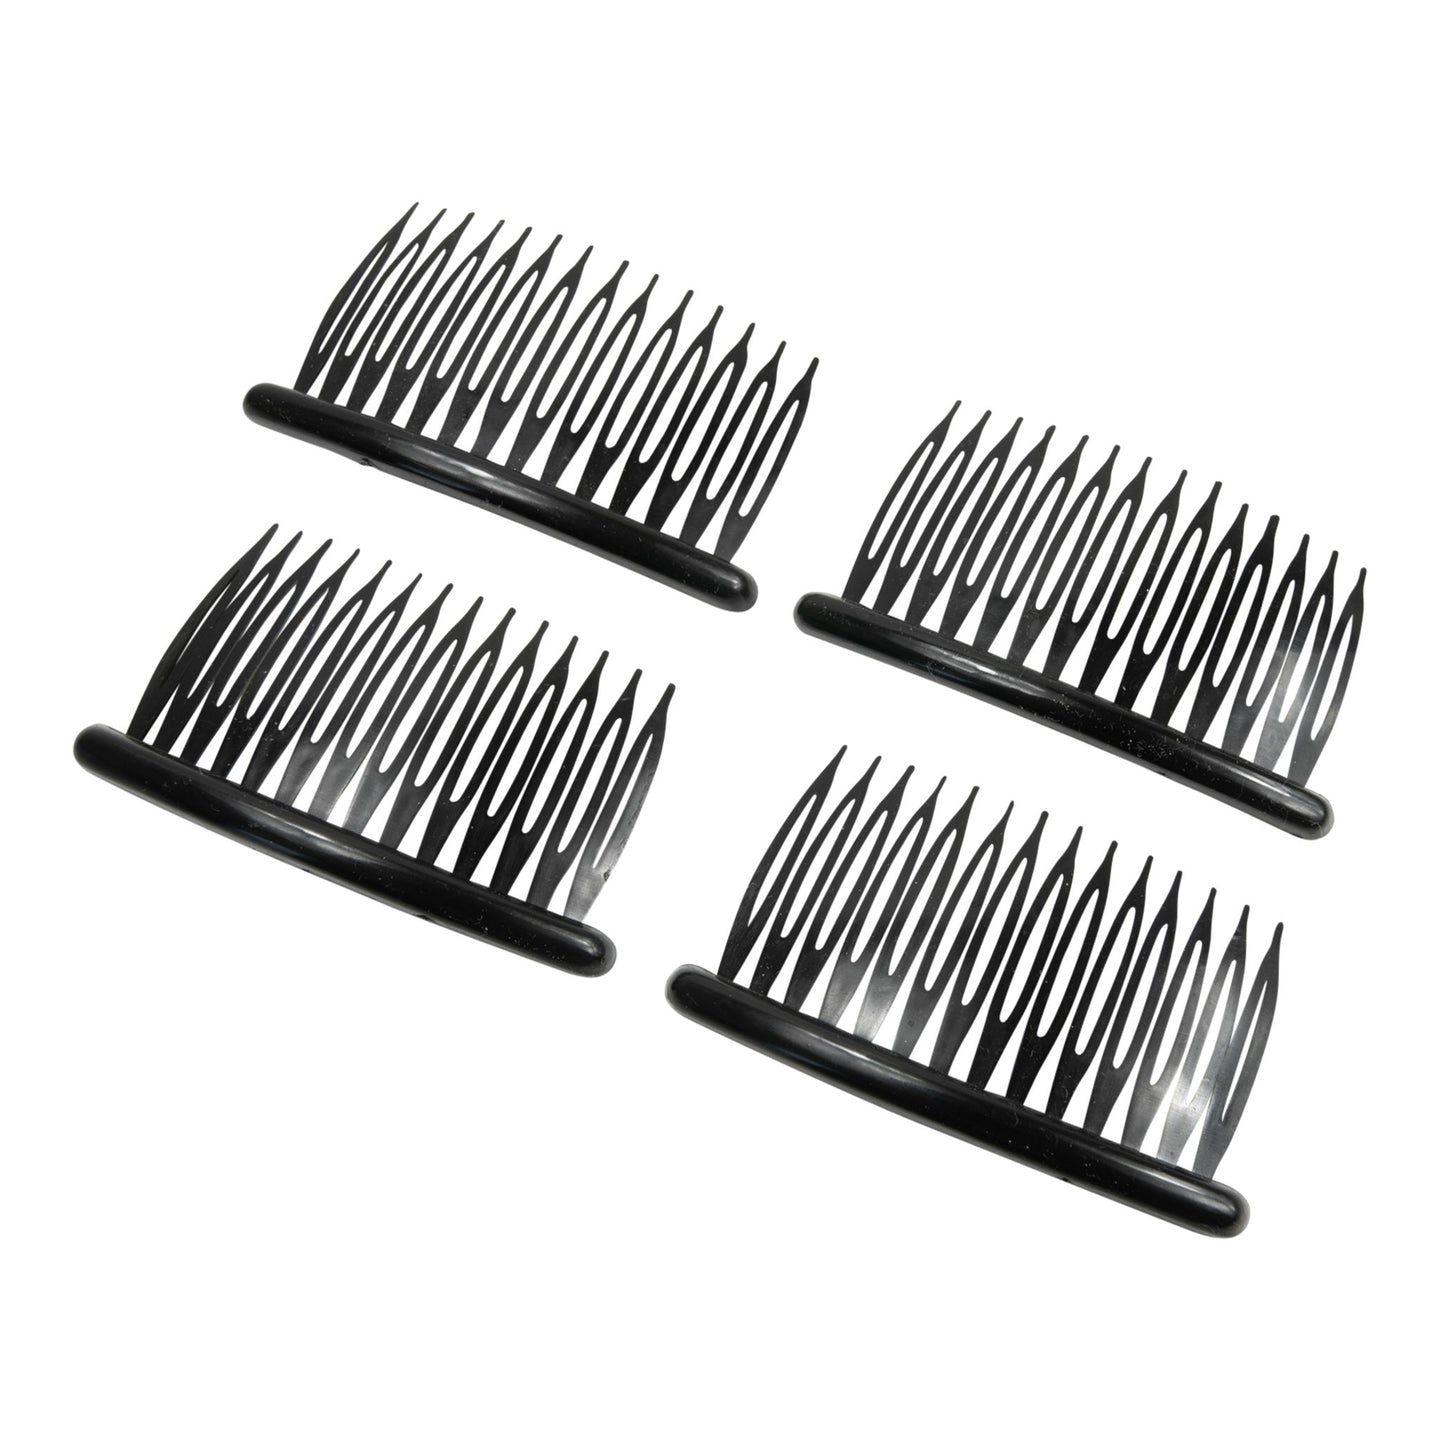 4 x plastic split hair comb with 14 teeth for fascinator millinery hats HB004